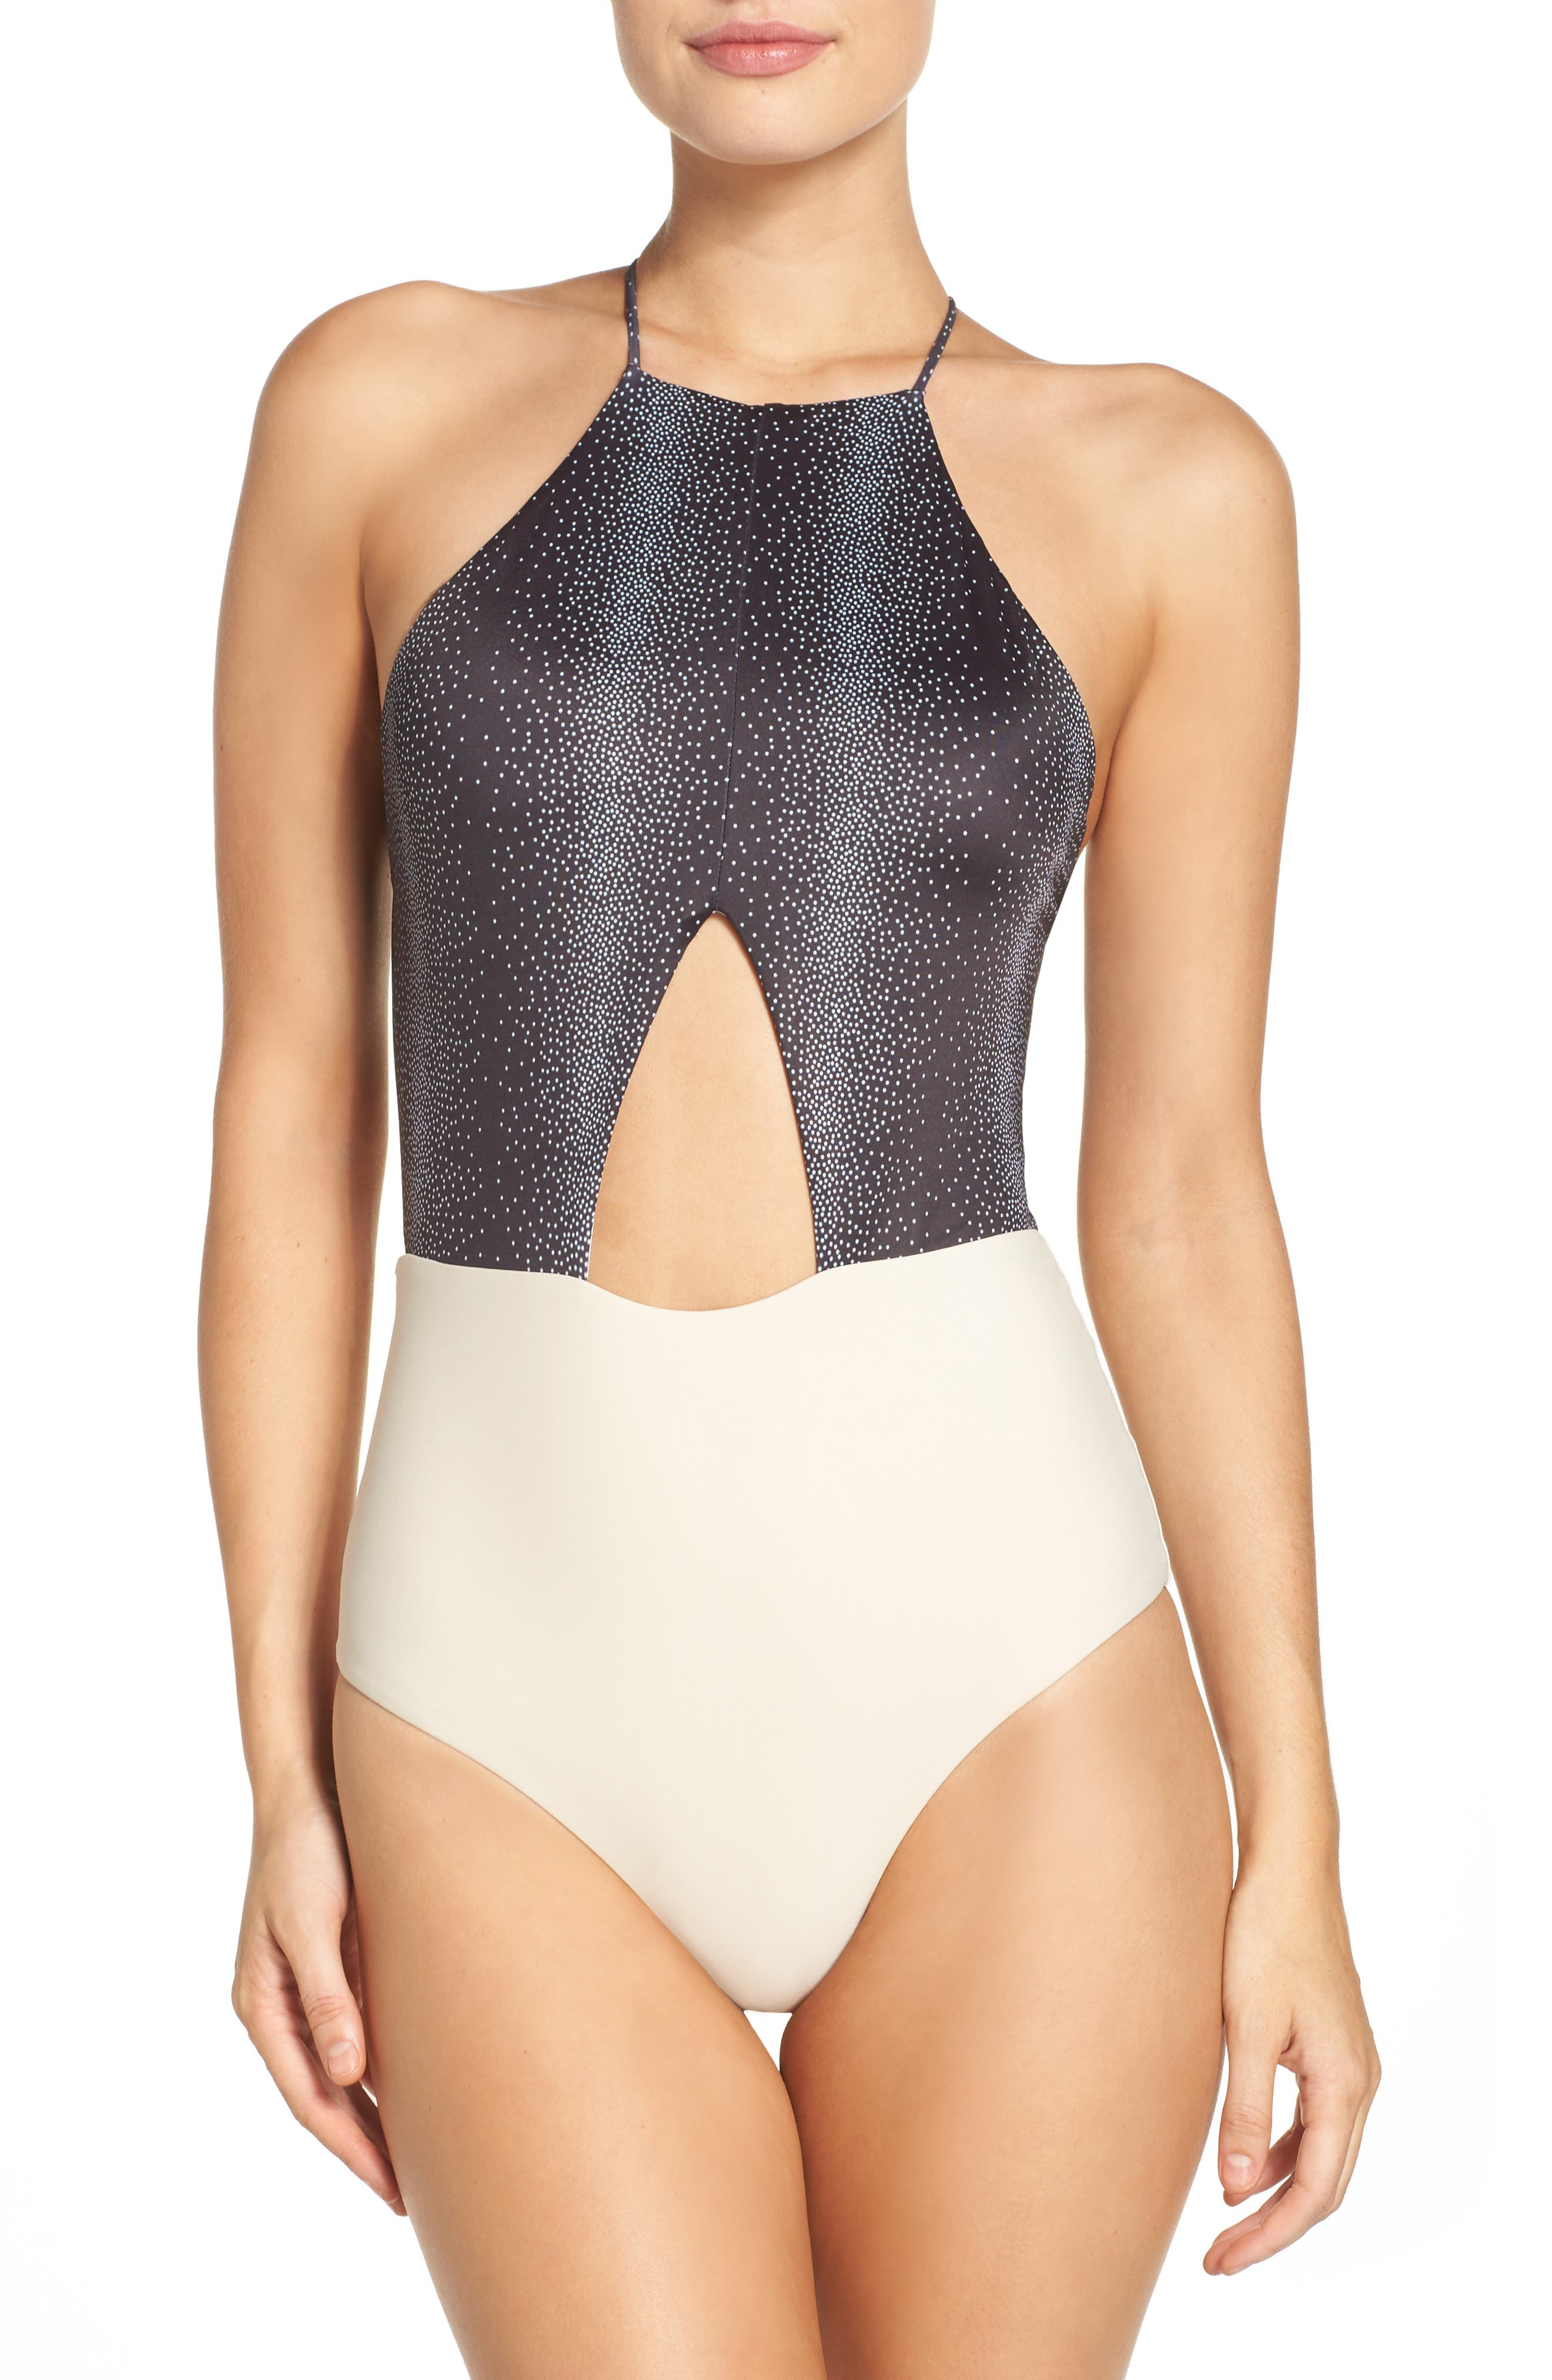 Lela One-Piece Swimsuit,                         Main,                         color, BLACK PERCY DOT